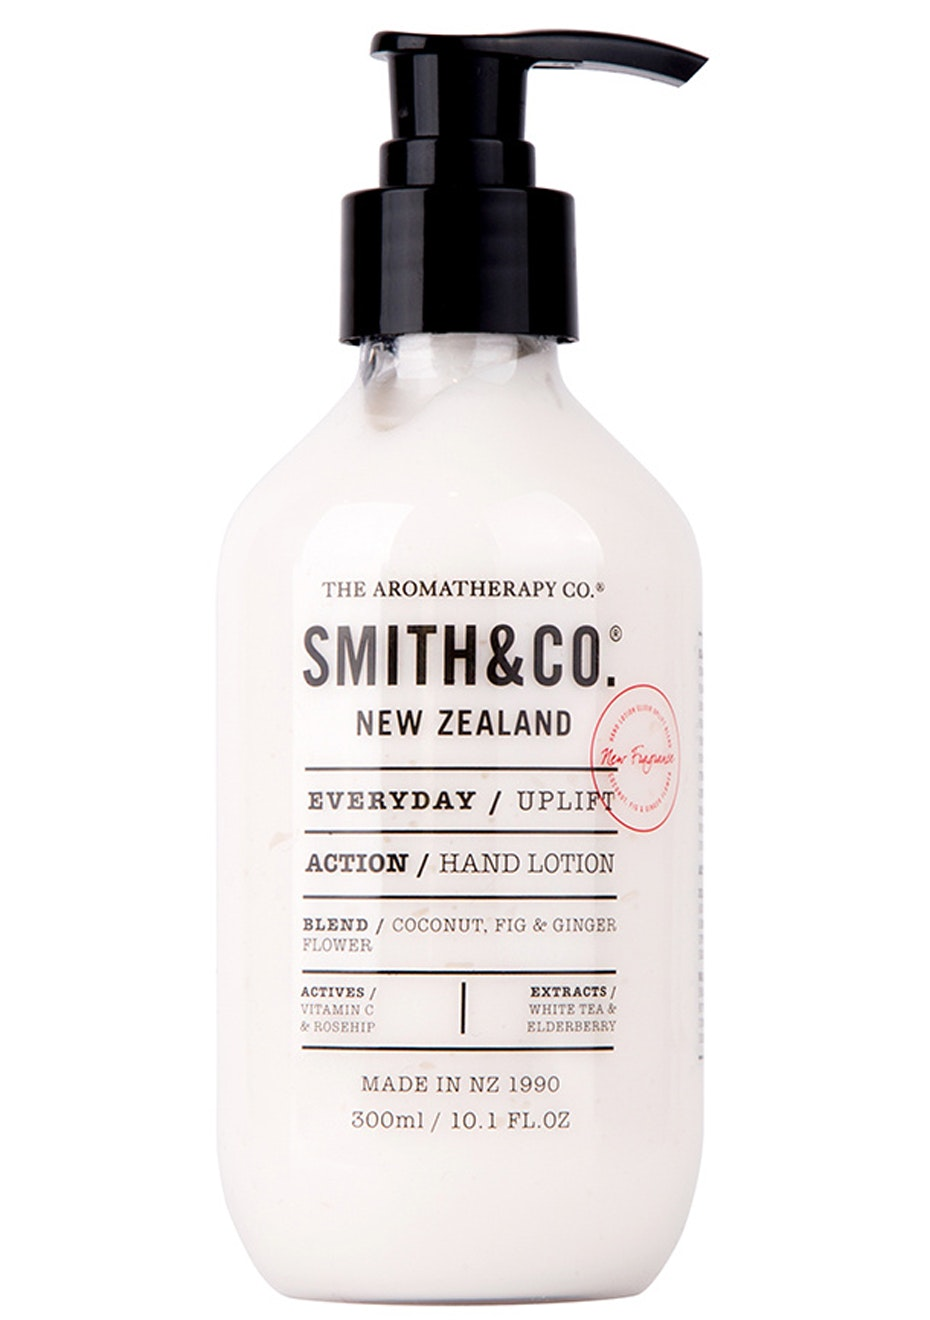 The Aromatherapy Co. Smith & Co. Hand Lotion - Uplift - 300ml